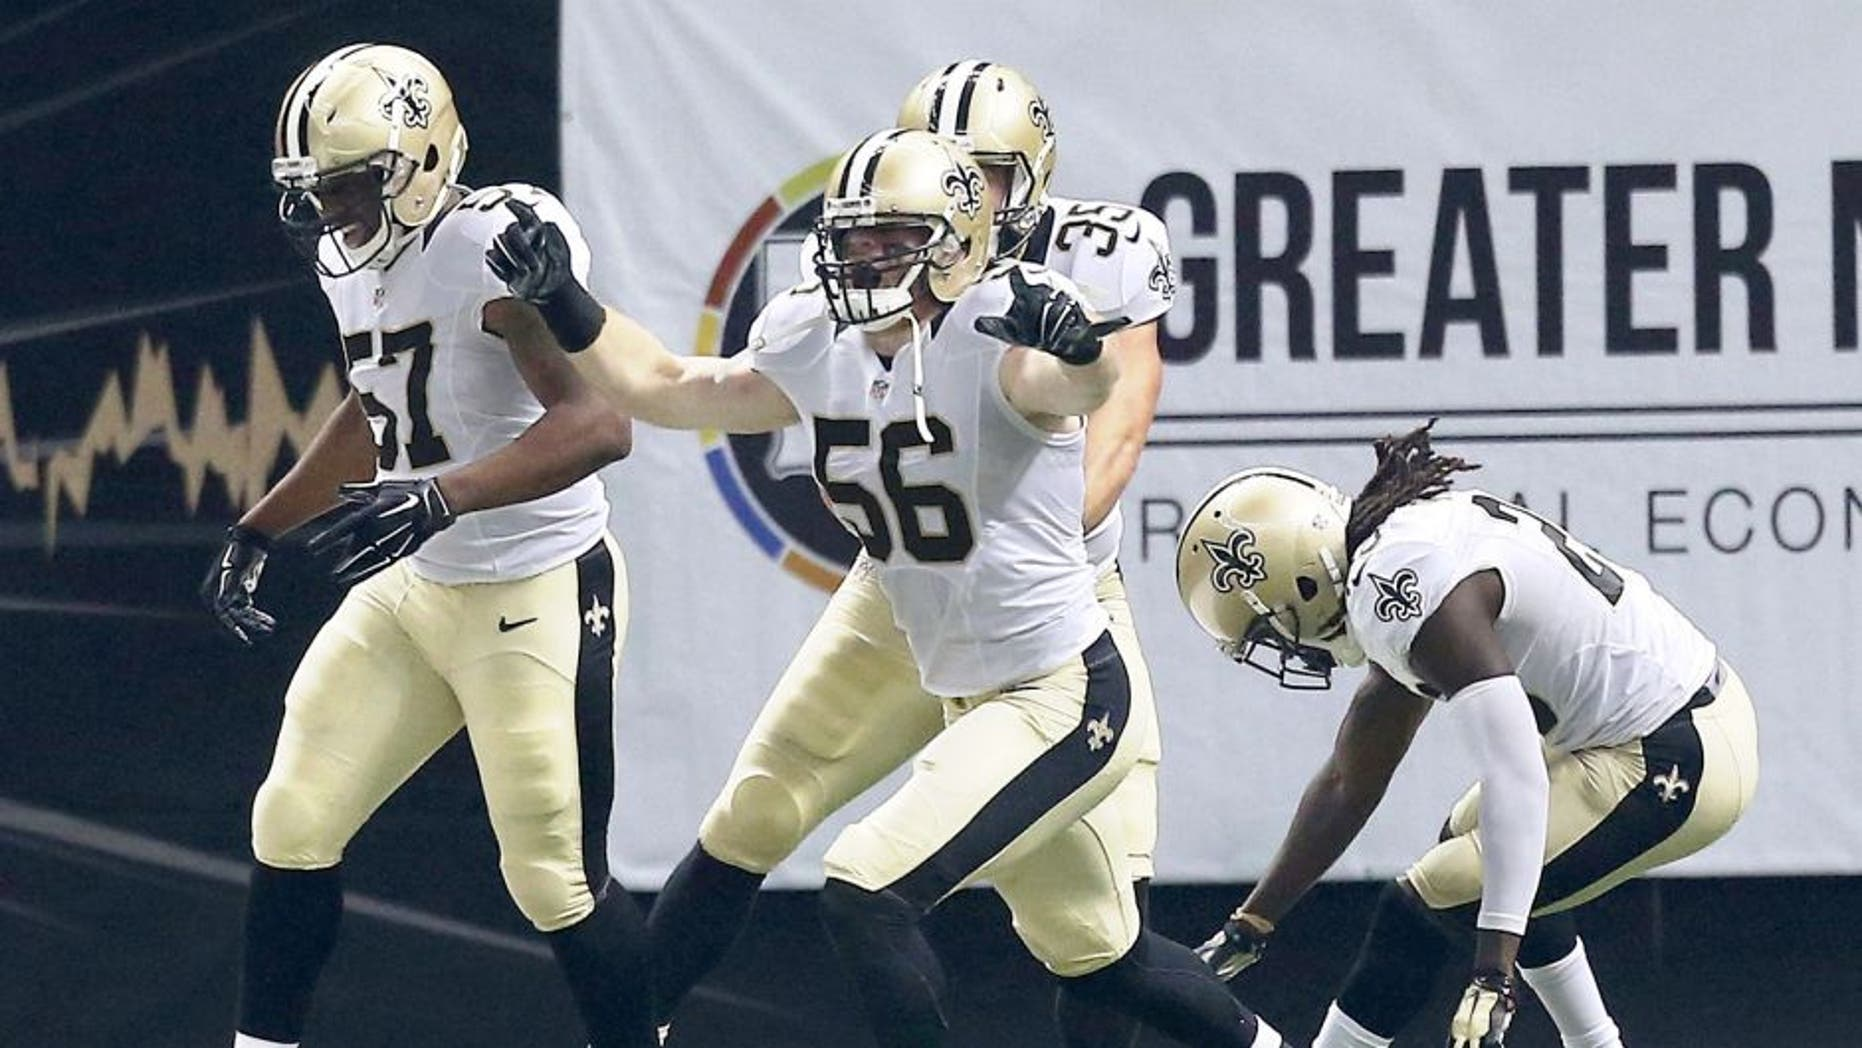 NEW ORLEANS, LA - OCTOBER 15: Michael Mauti #56 of the New Orleans Saints reacts to a touchdown folllowing a blocked punt during the first quarter of a game against the Atlanta Falcons at the Mercedes-Benz Superdome on October 15, 2015 in New Orleans, Louisiana. (Photo by Sean Gardner/Getty Images)